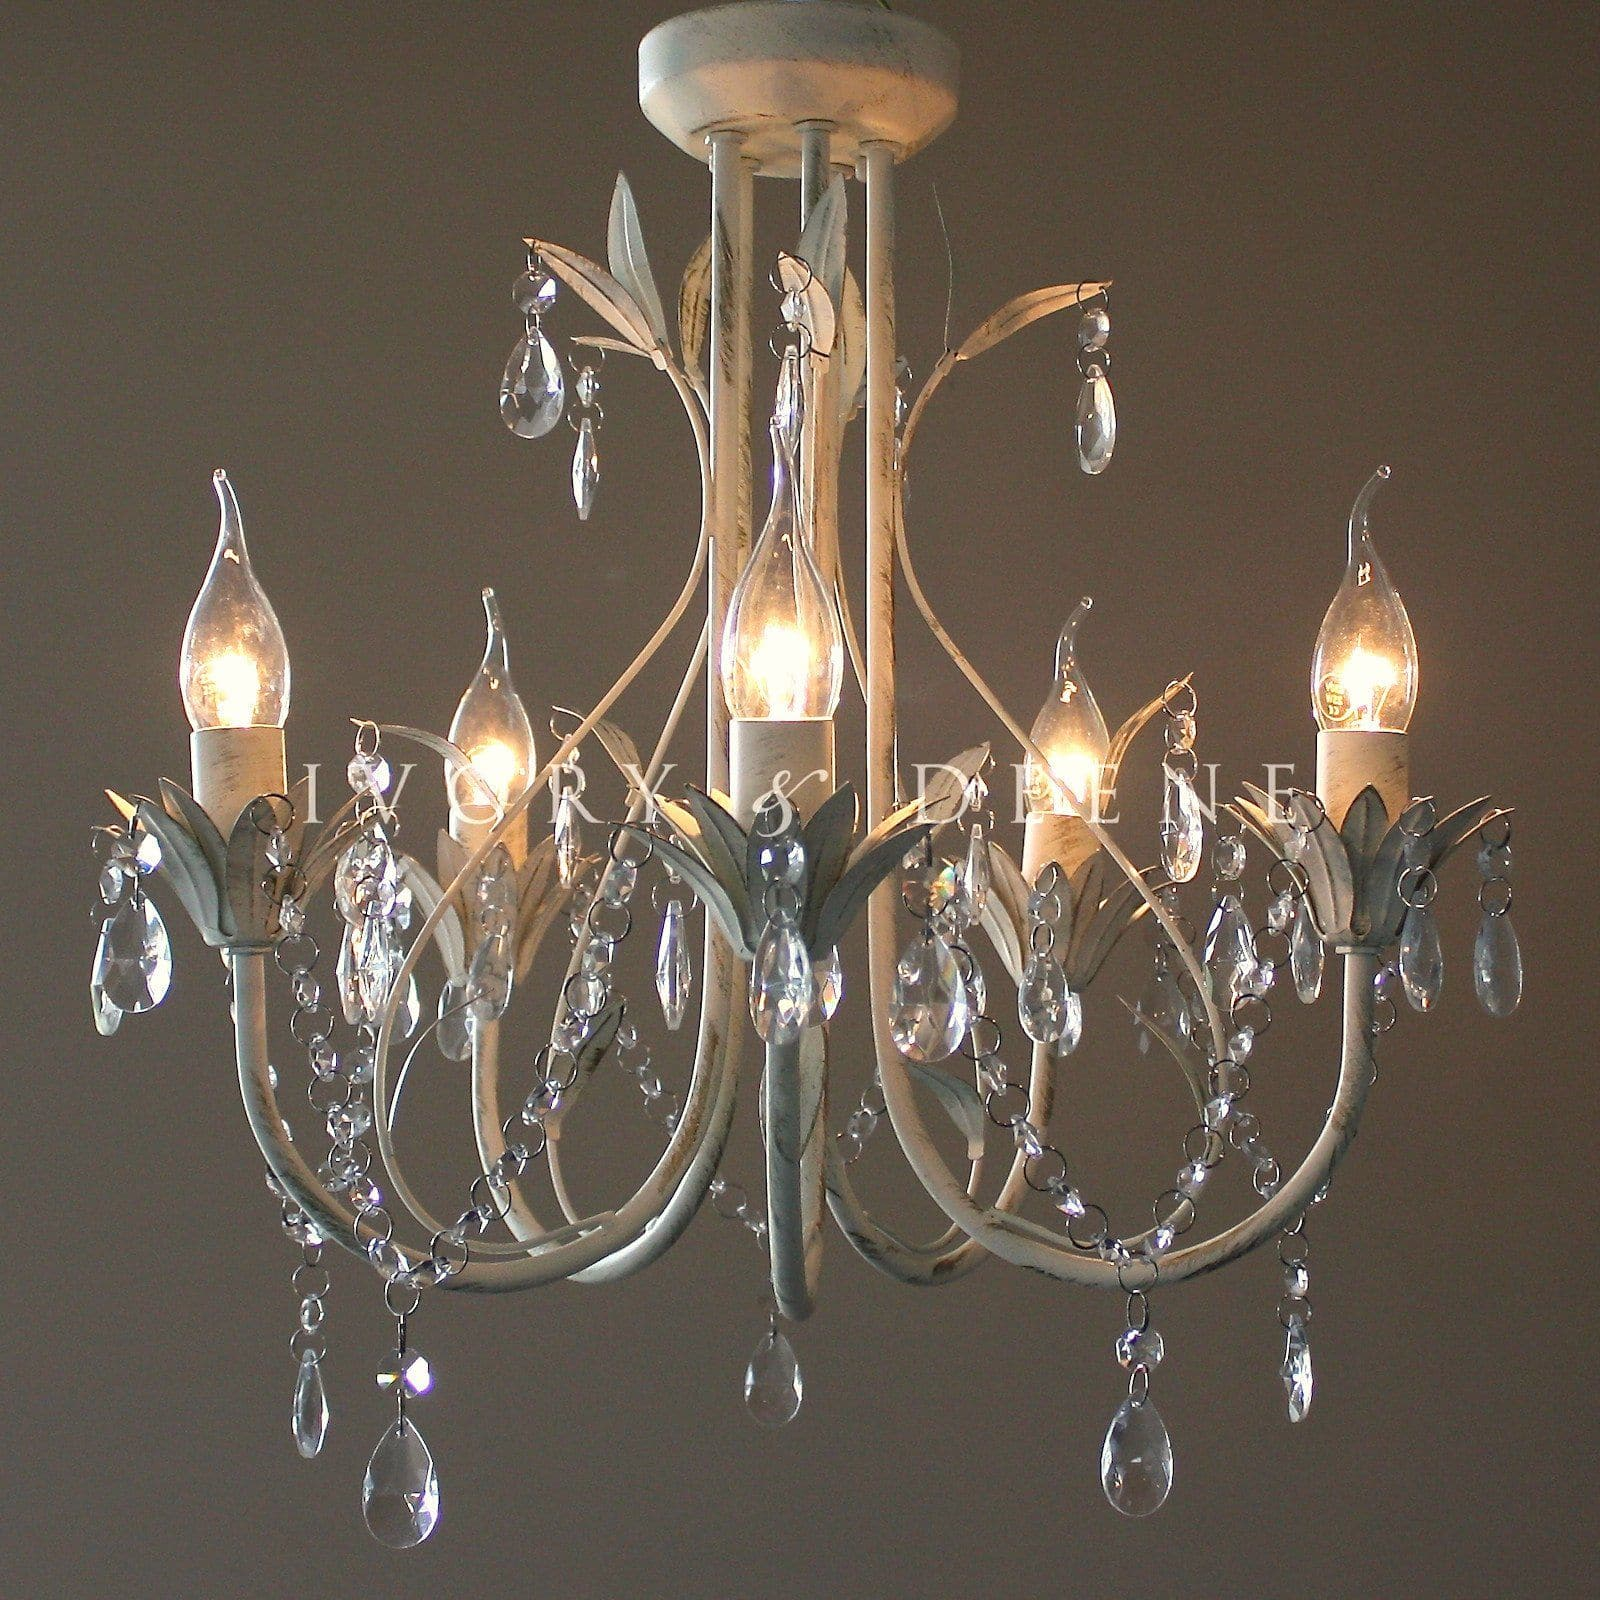 Chandelier 5 light french provincial harmony ivory deene pty ltd glass crystal french provincial chandelier 5 light pendant aloadofball Gallery